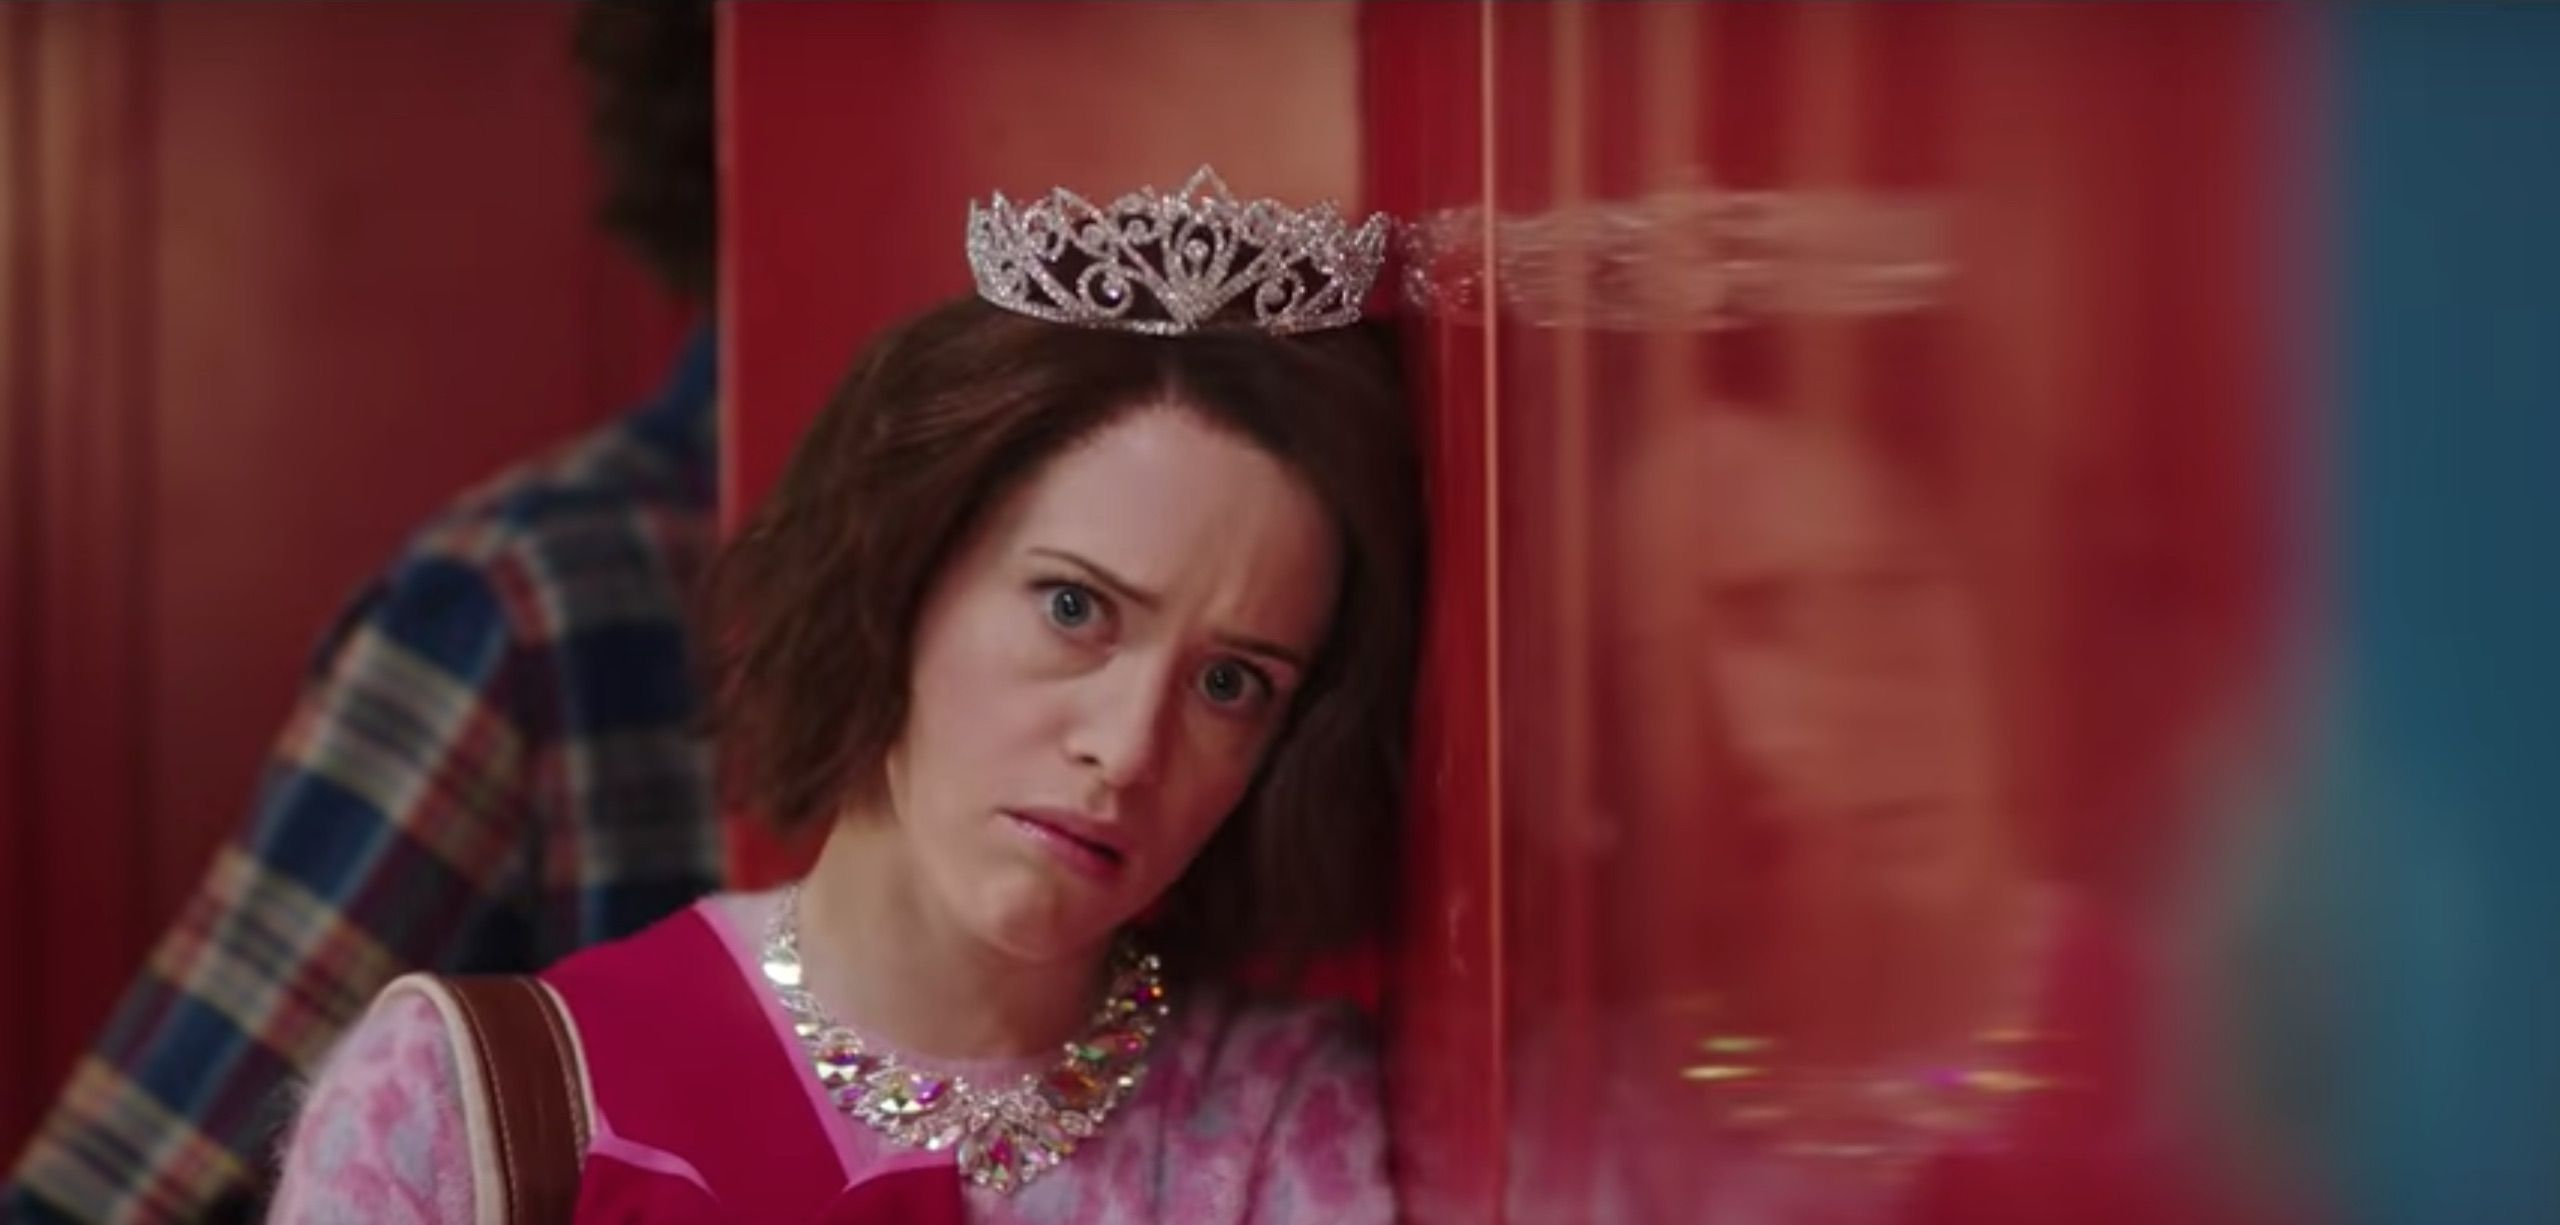 The Crown's Claire Foy helps Saturday Night Live poke fun at Netflix